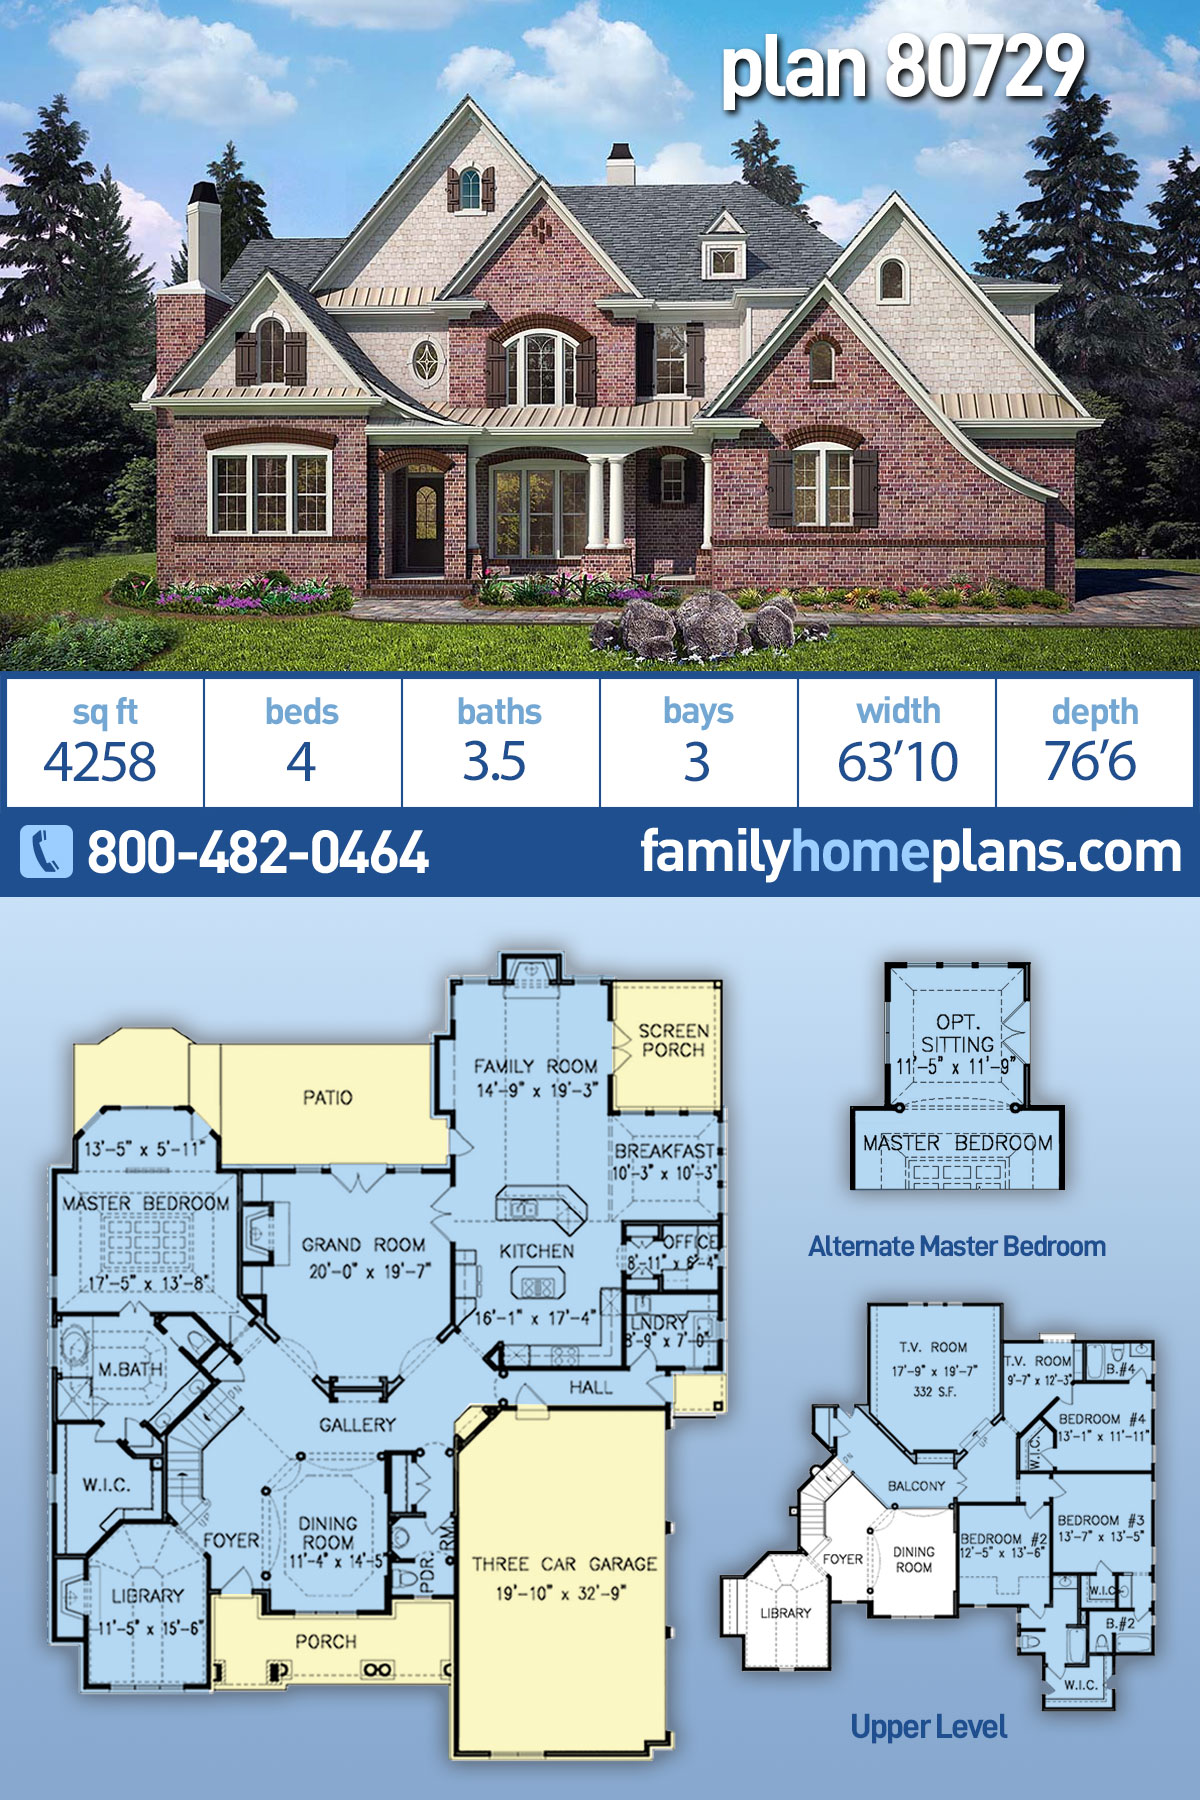 European, Traditional House Plan 80729 with 4 Beds, 4 Baths, 3 Car Garage